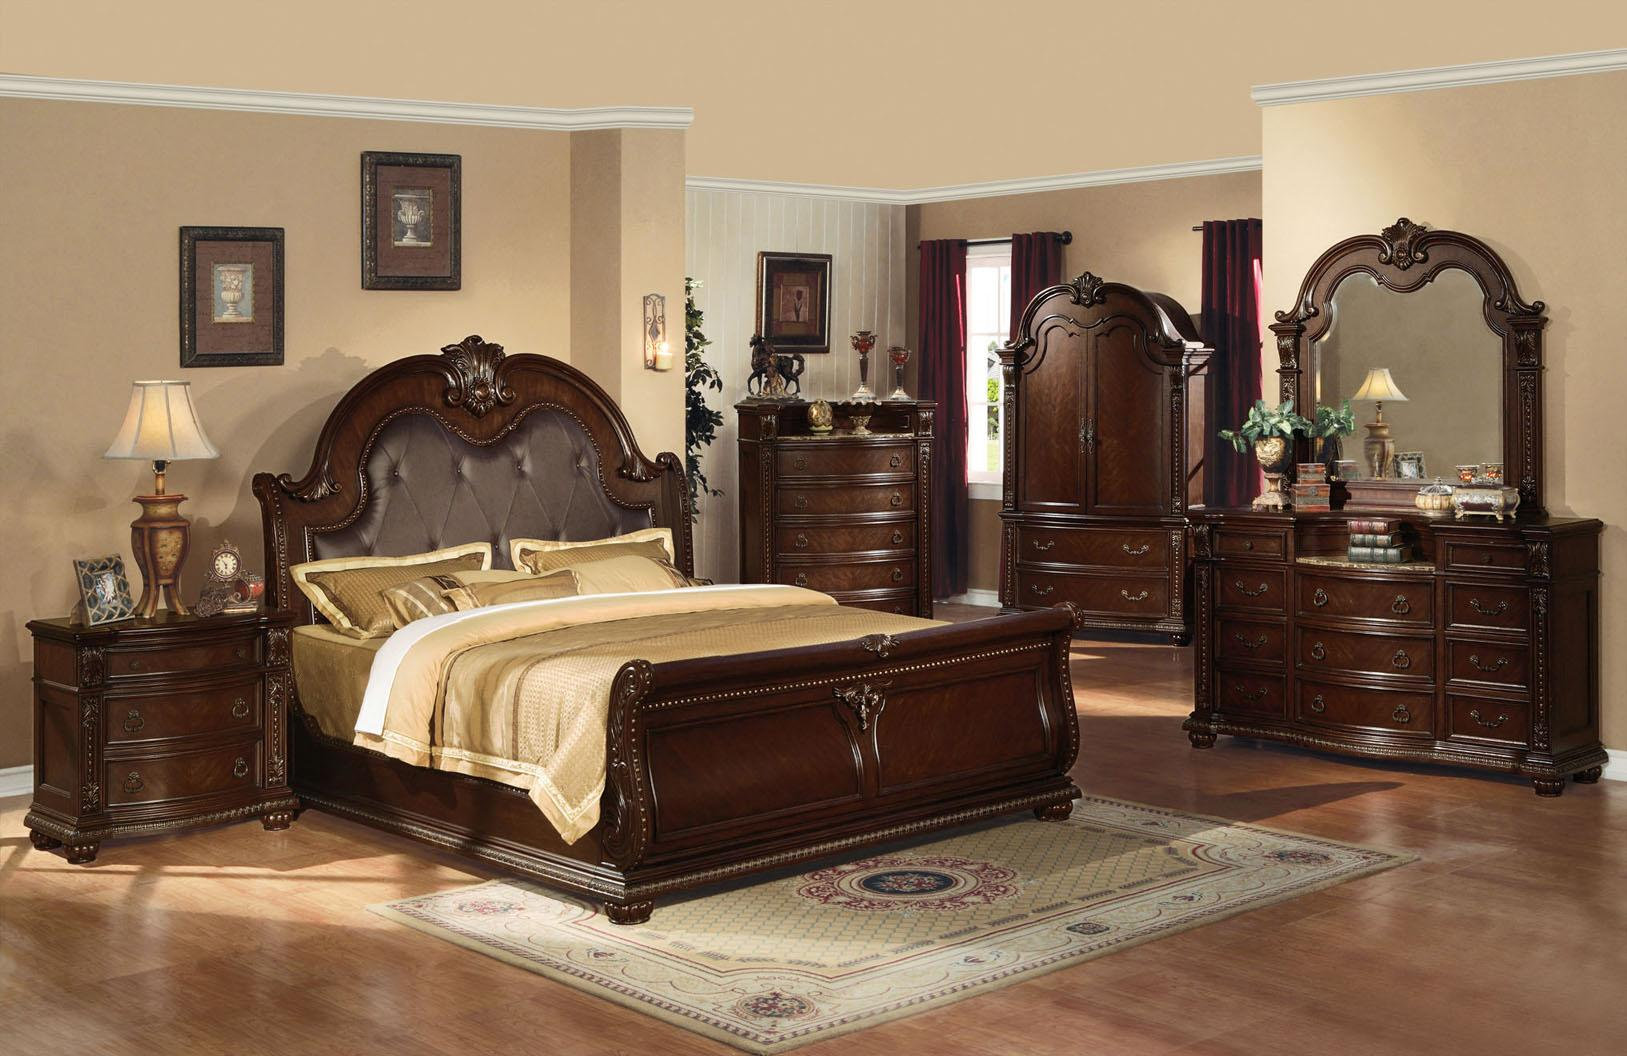 Acme Furniture Anondale Cal King Bedroom Group - Item Number: 103 CK Bedroom Group